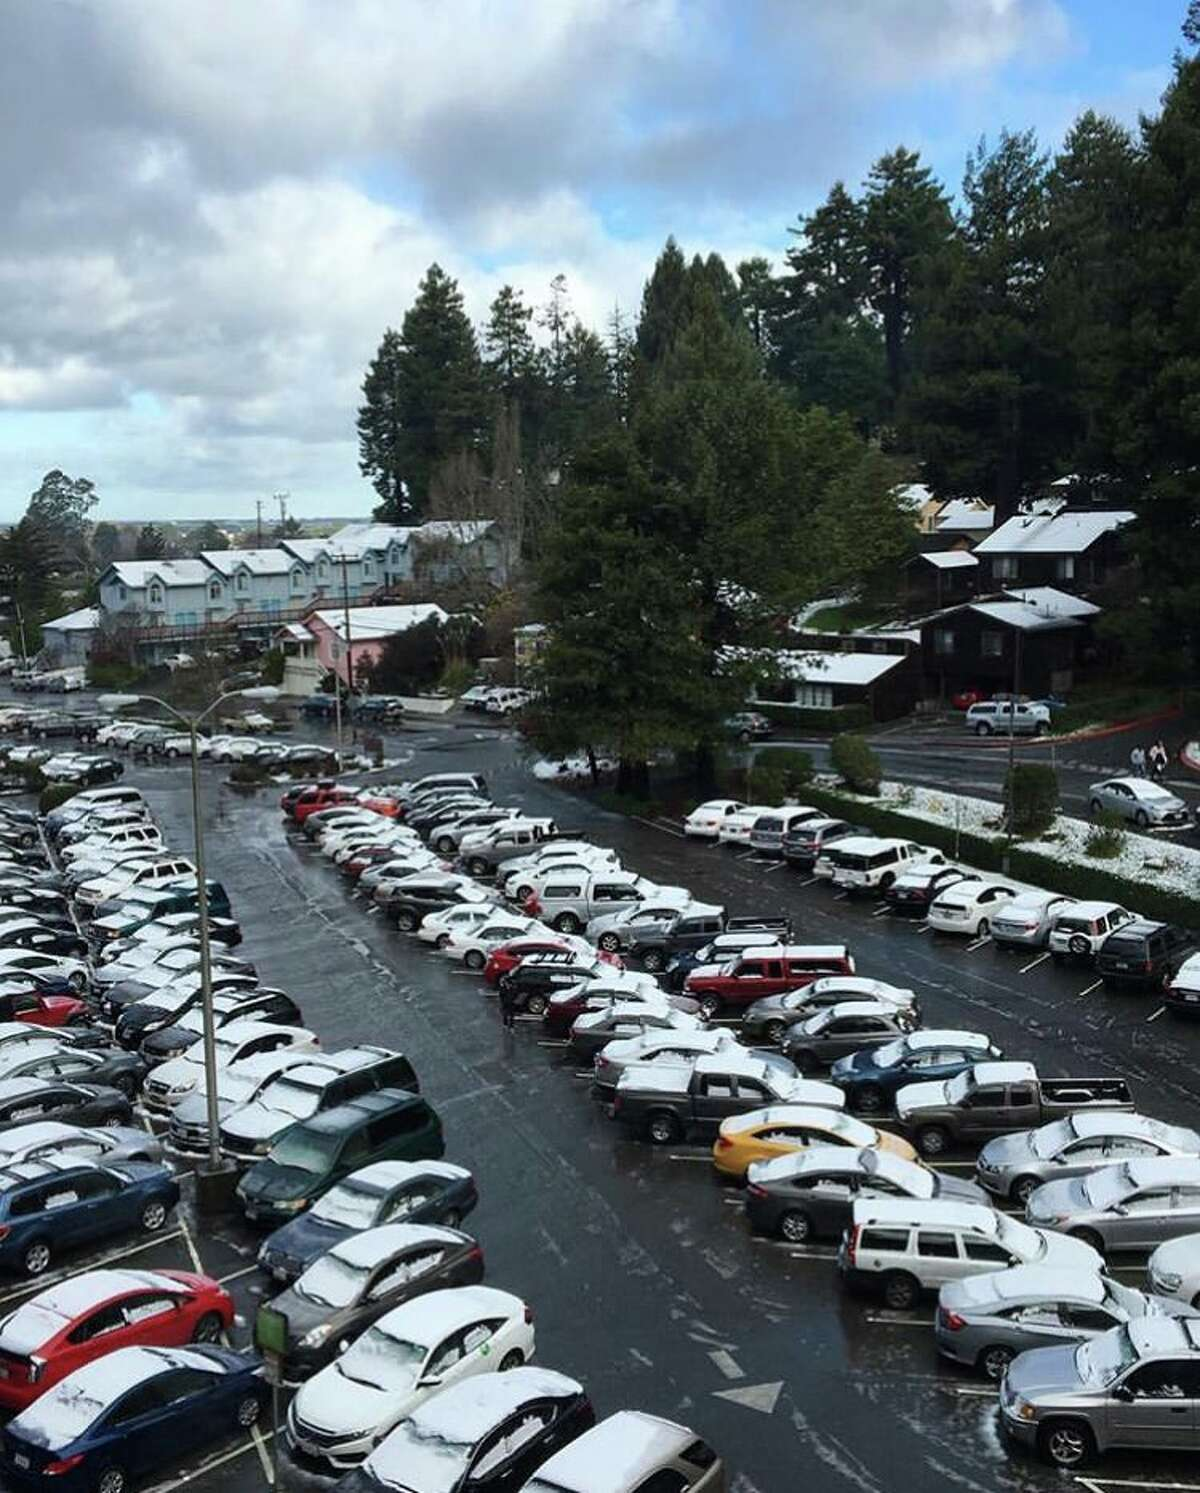 Snow on cars at Humboldt State in Arcata, Calif. on Sunday, Feb. 10, 2019.